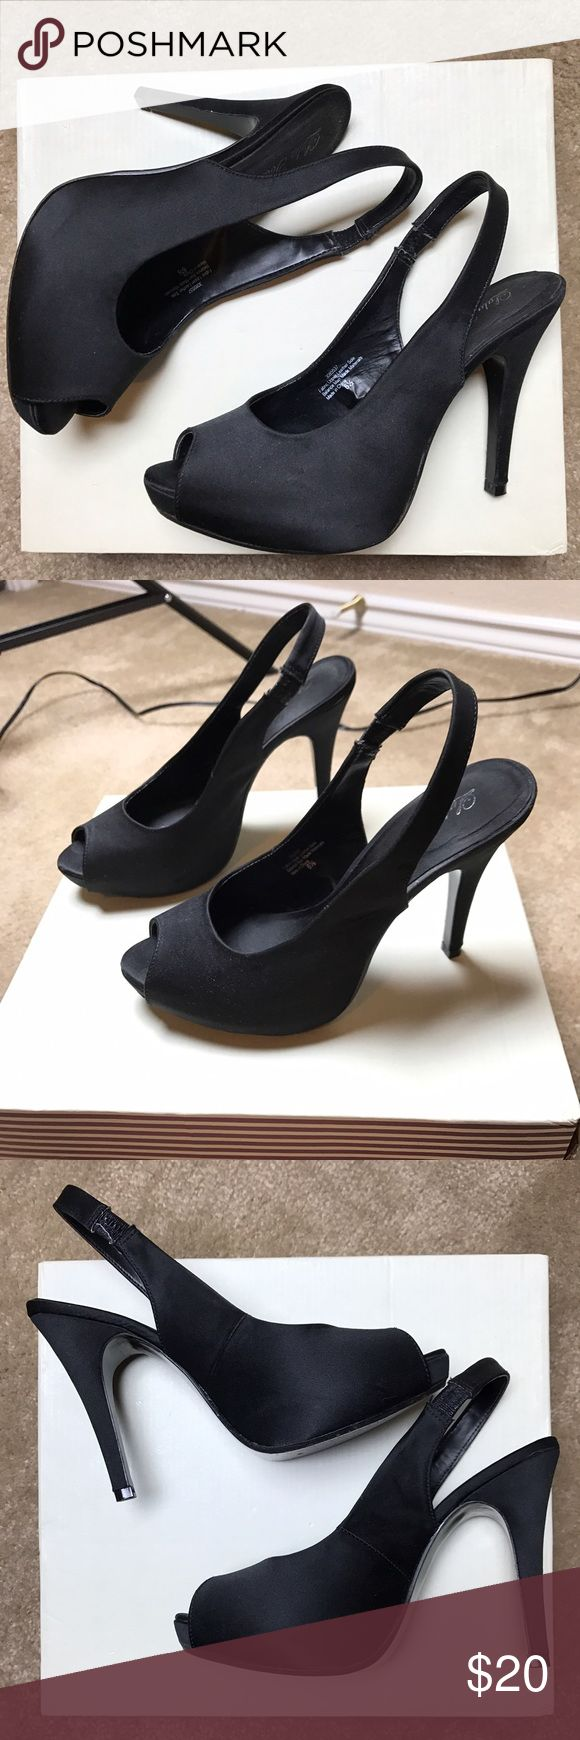 Peep toe heels Black peep two heels. Great condition,  worn twice. Women's size 6 1/2. They are NOT Steve Madden. I'm not sure of the brand. Size of heel 4 1/2 inches. Steve Madden Shoes Heels